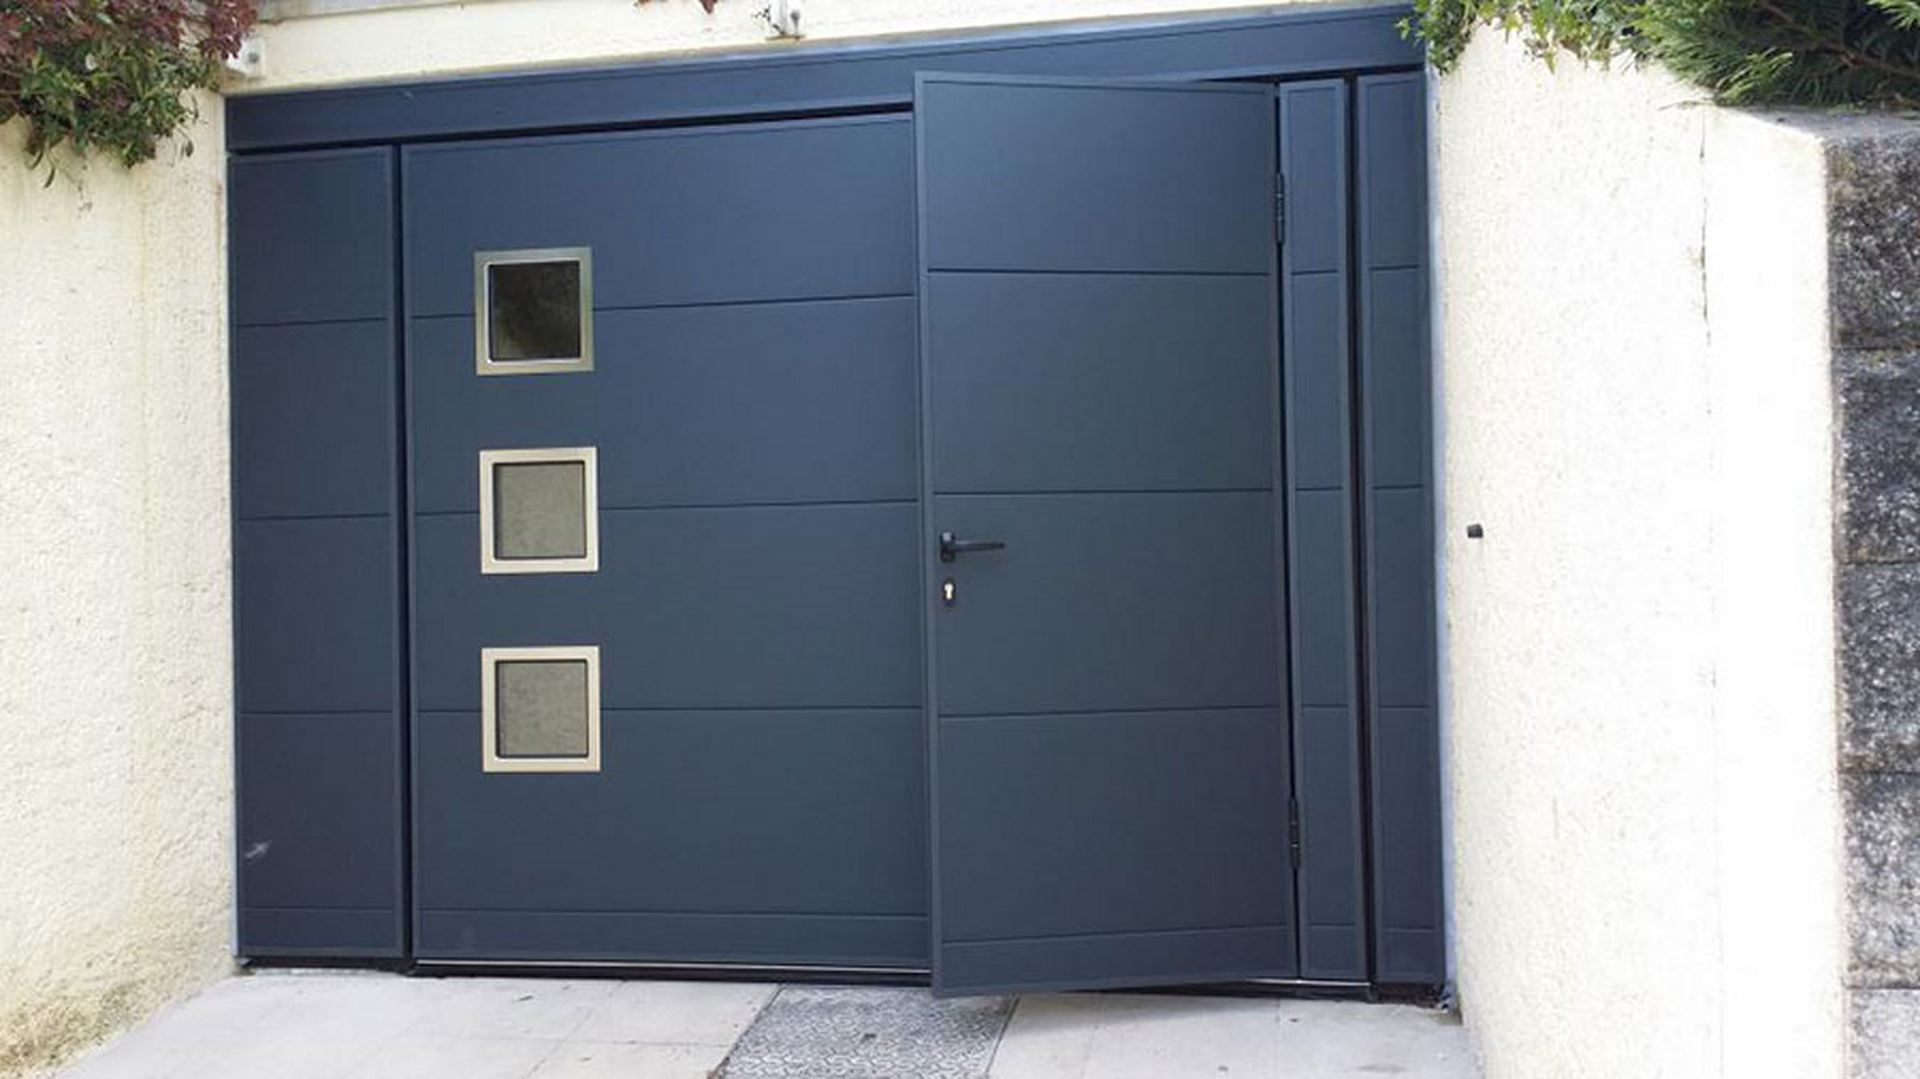 Combien co te une installation de porte de garage abc for Porte de garage toulouse